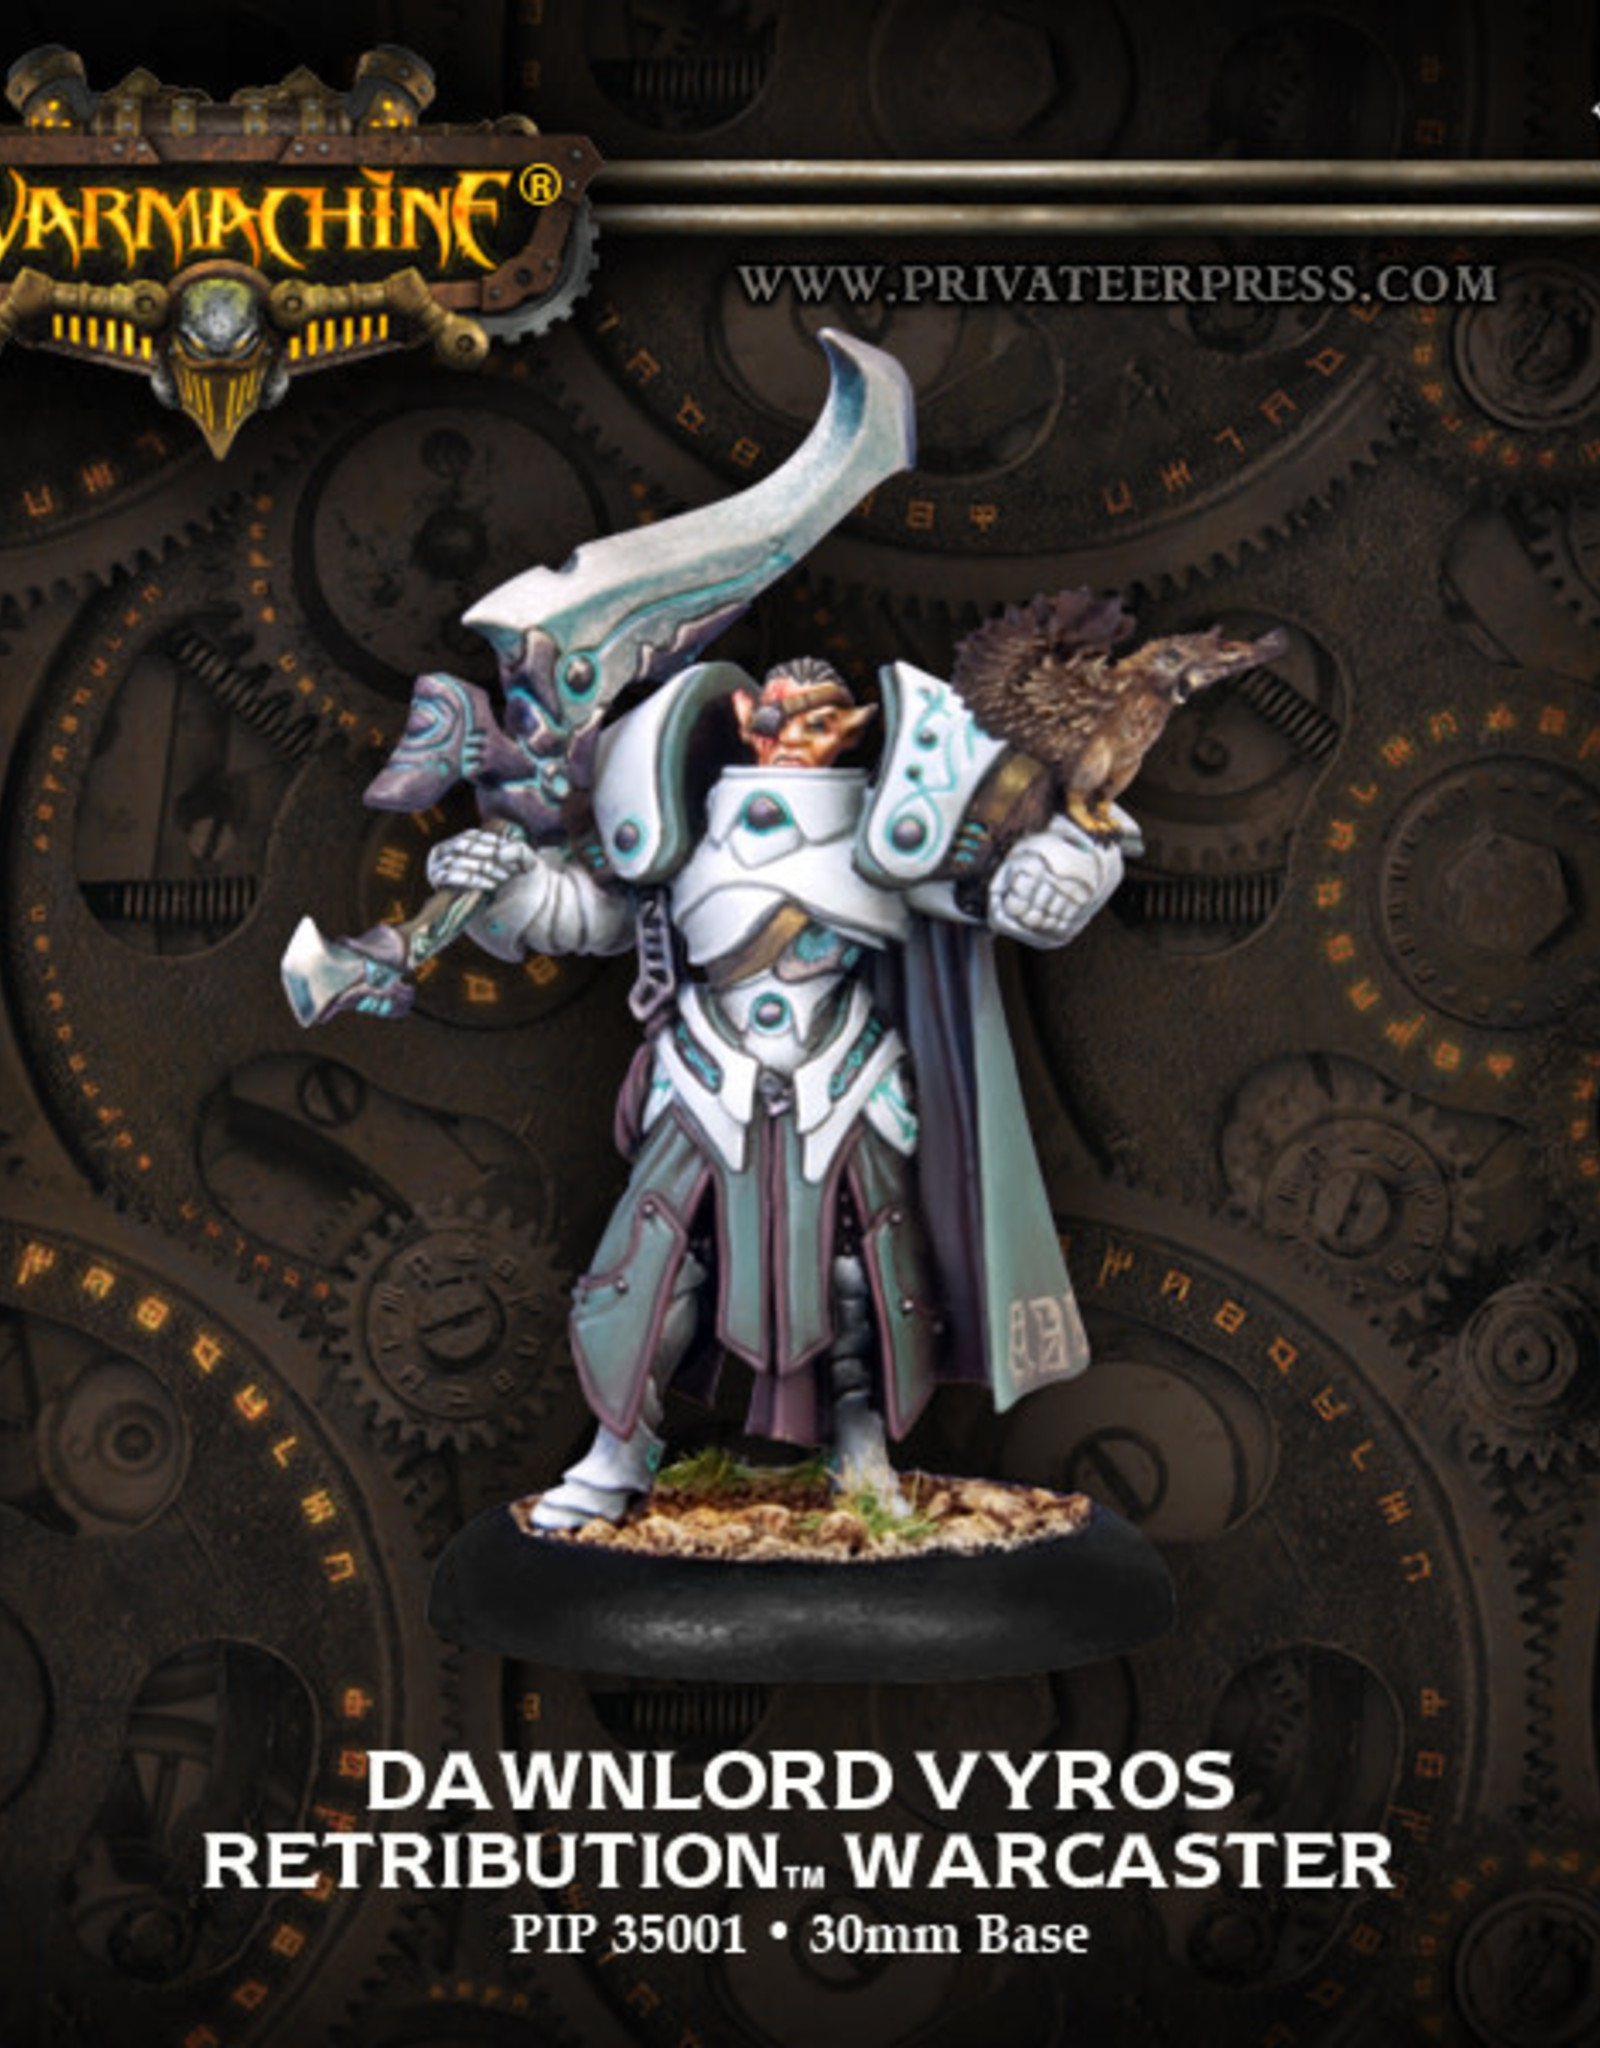 Warmachine Scyrah - Dawnlord Vyros